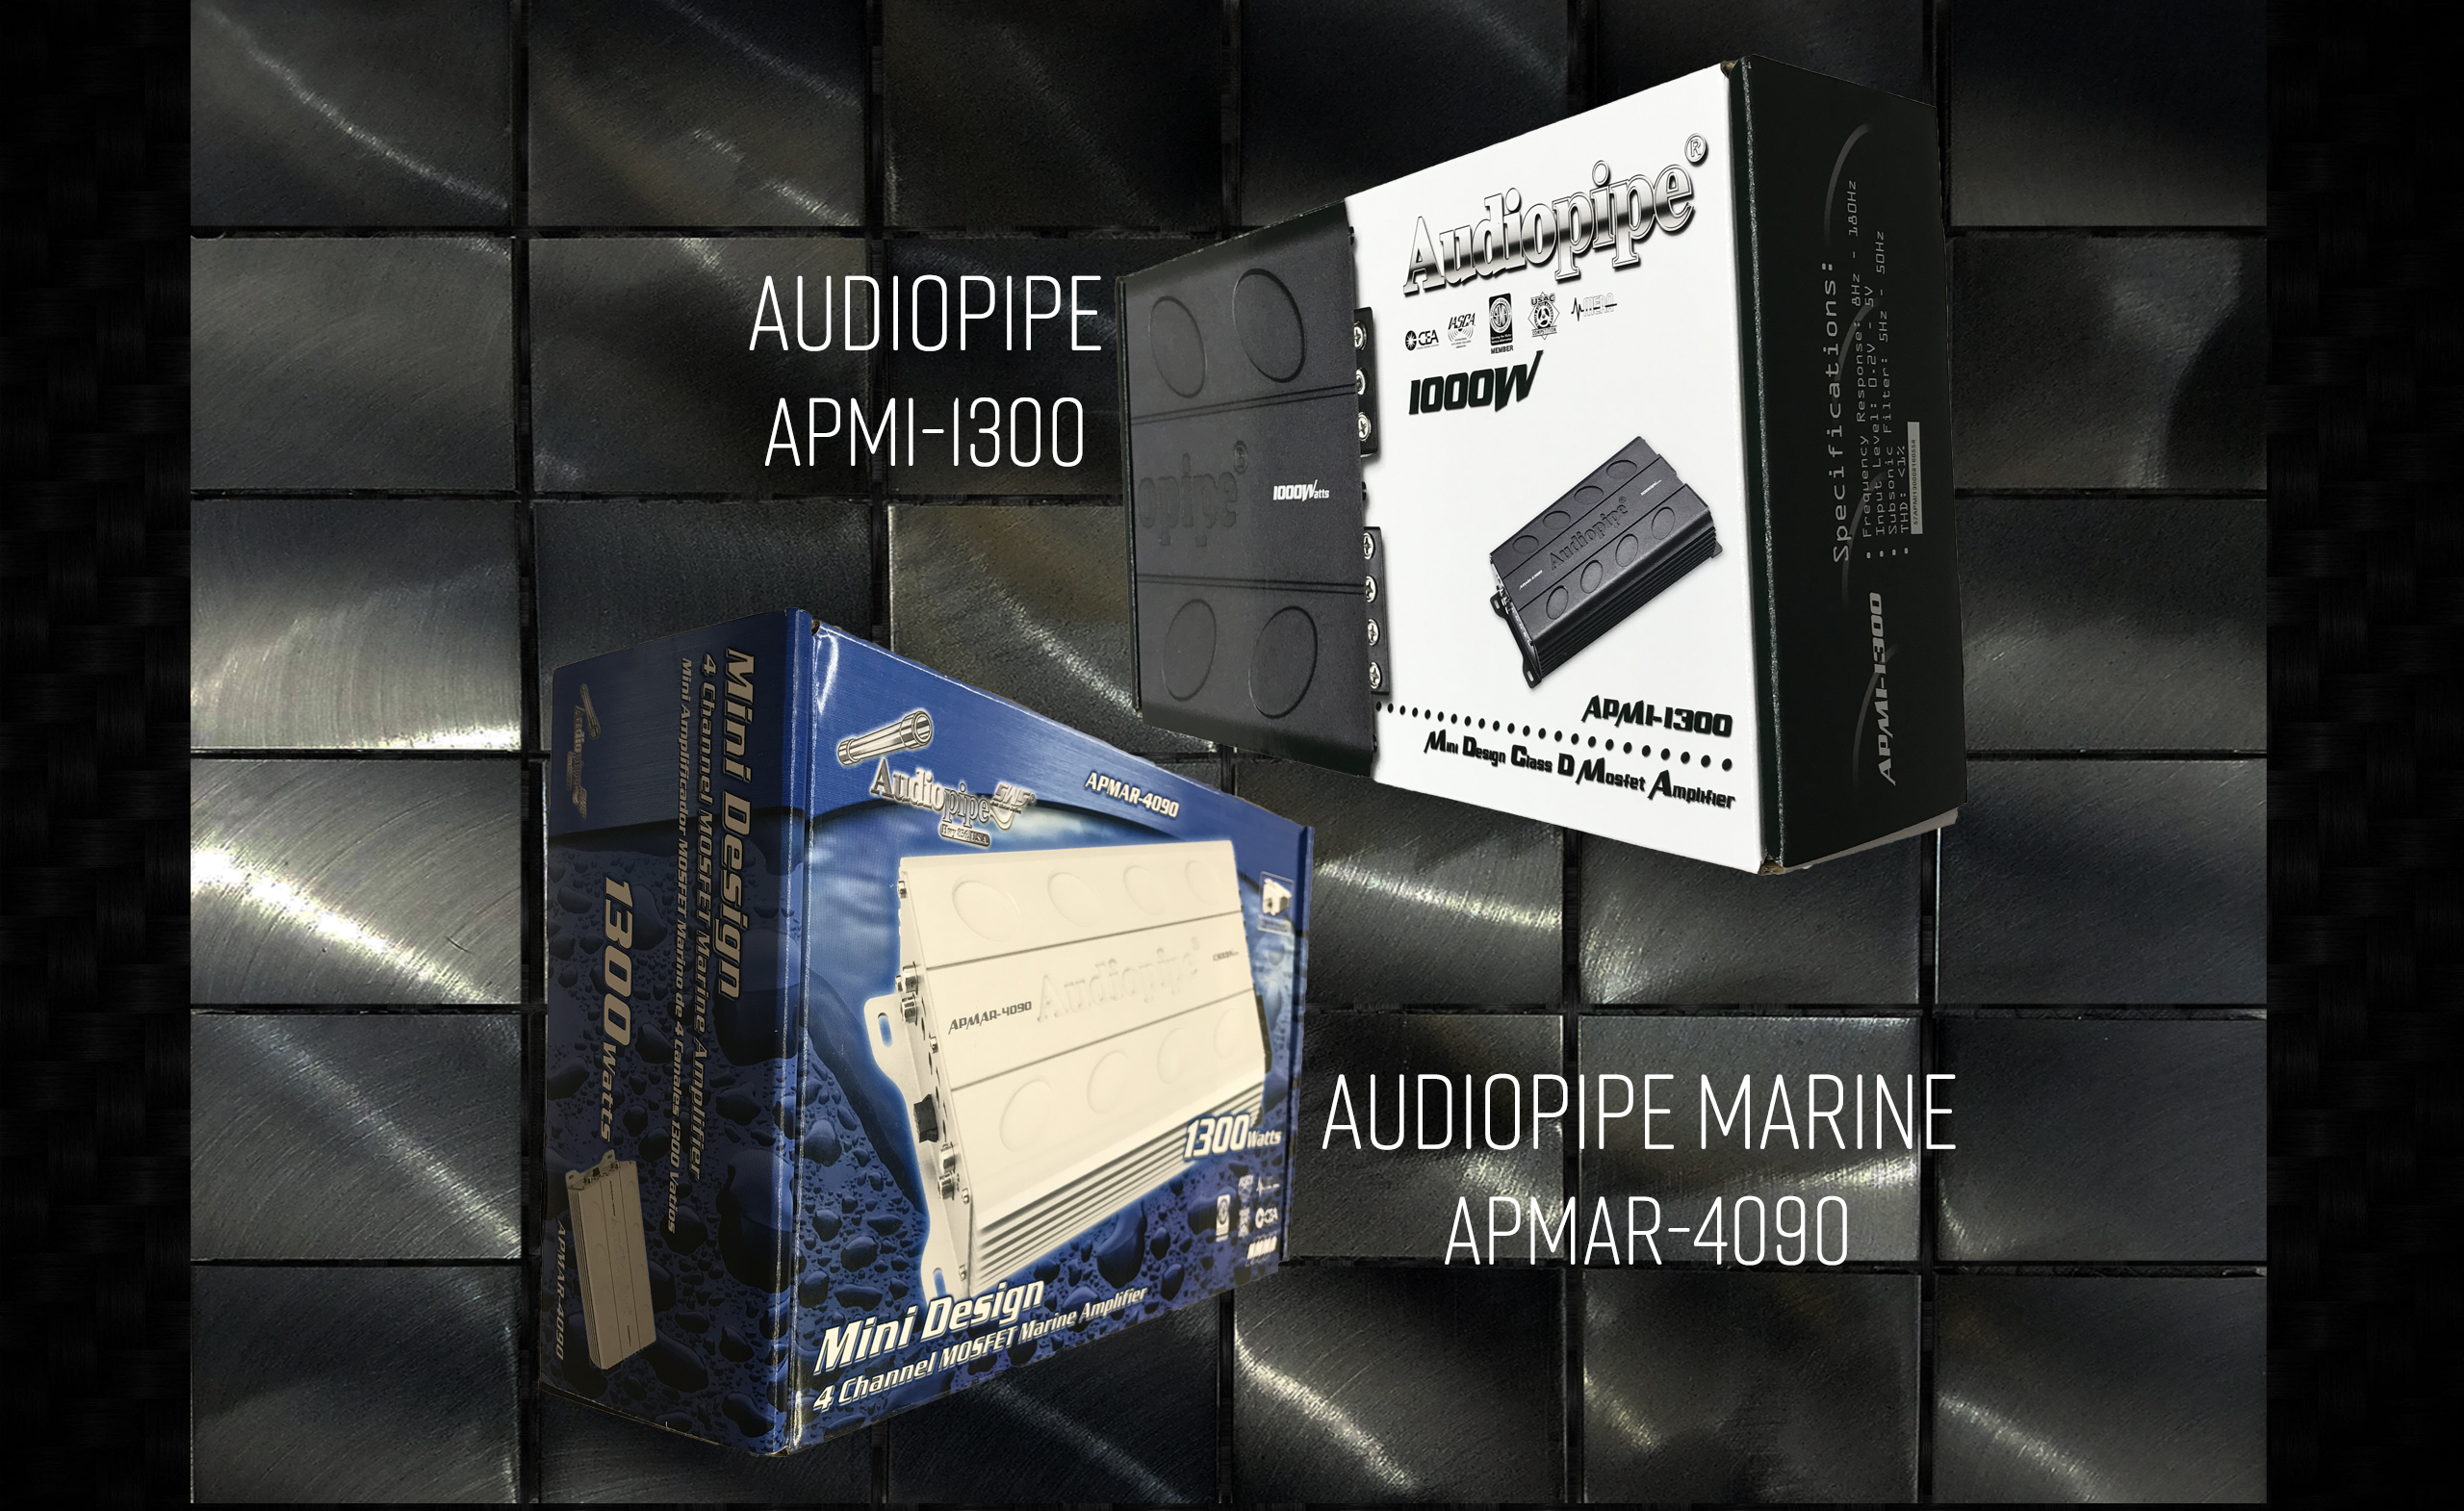 Audiopipe Amplifier